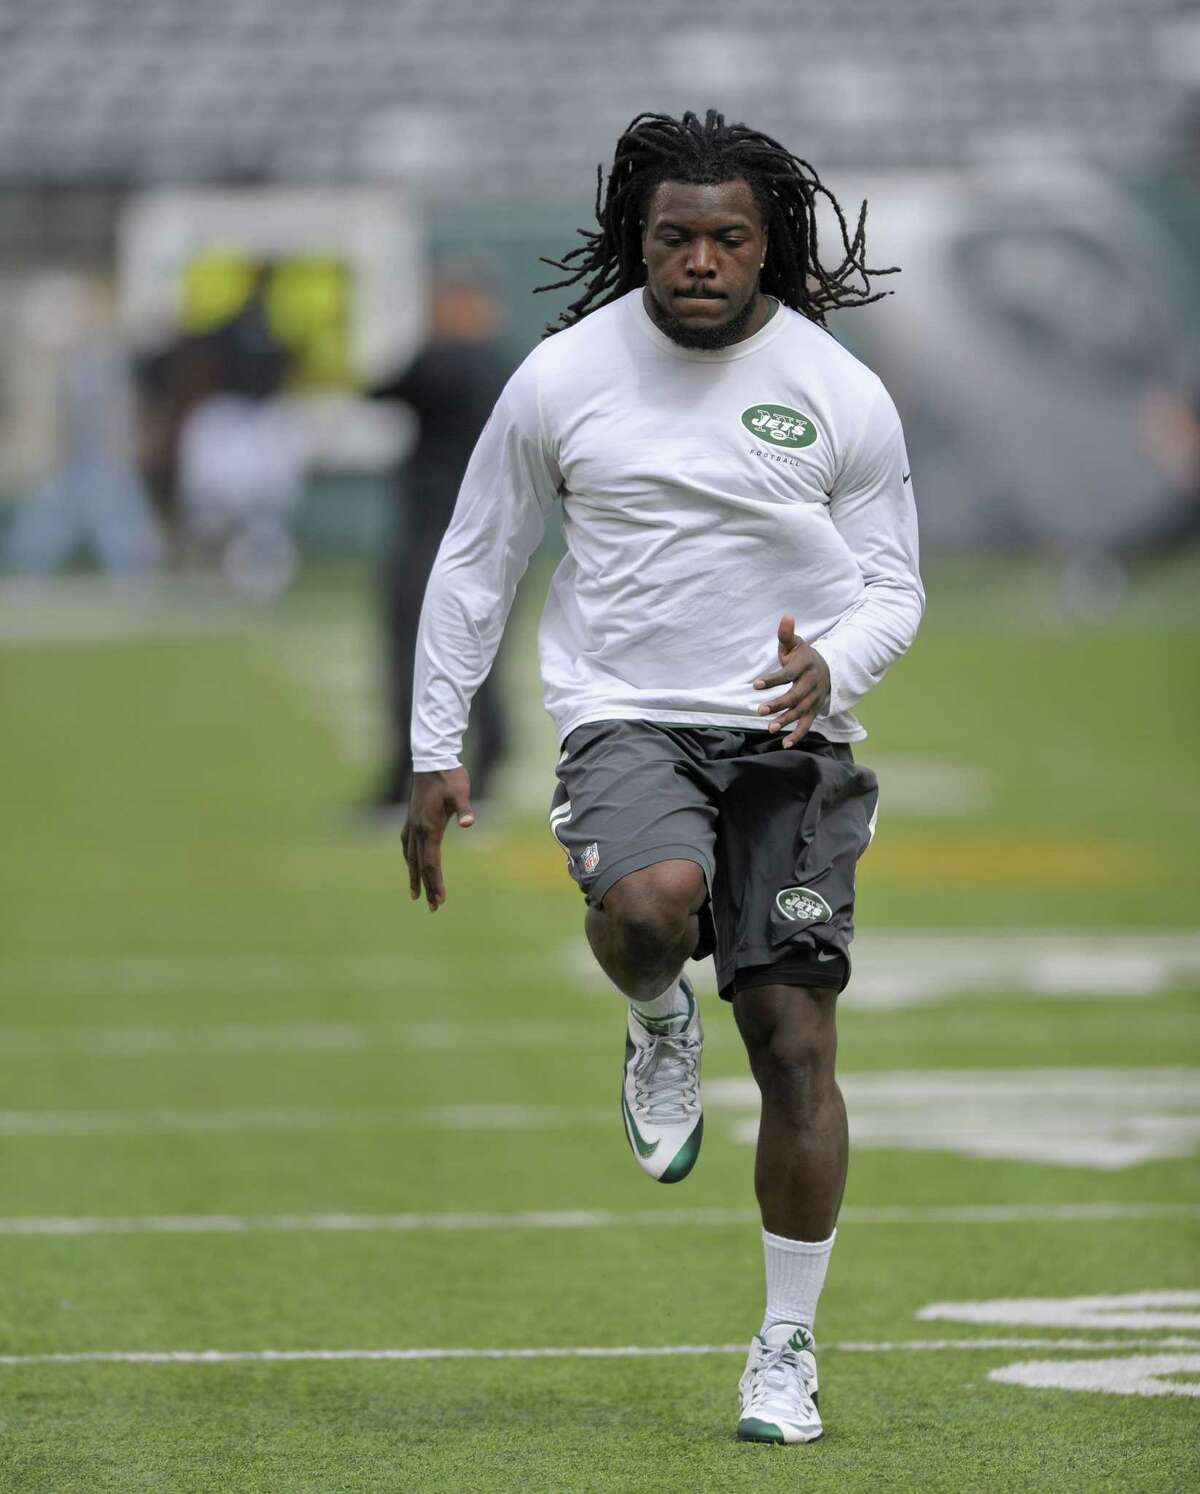 Jets running back Chris Ivory warms up before a game earlier this season.